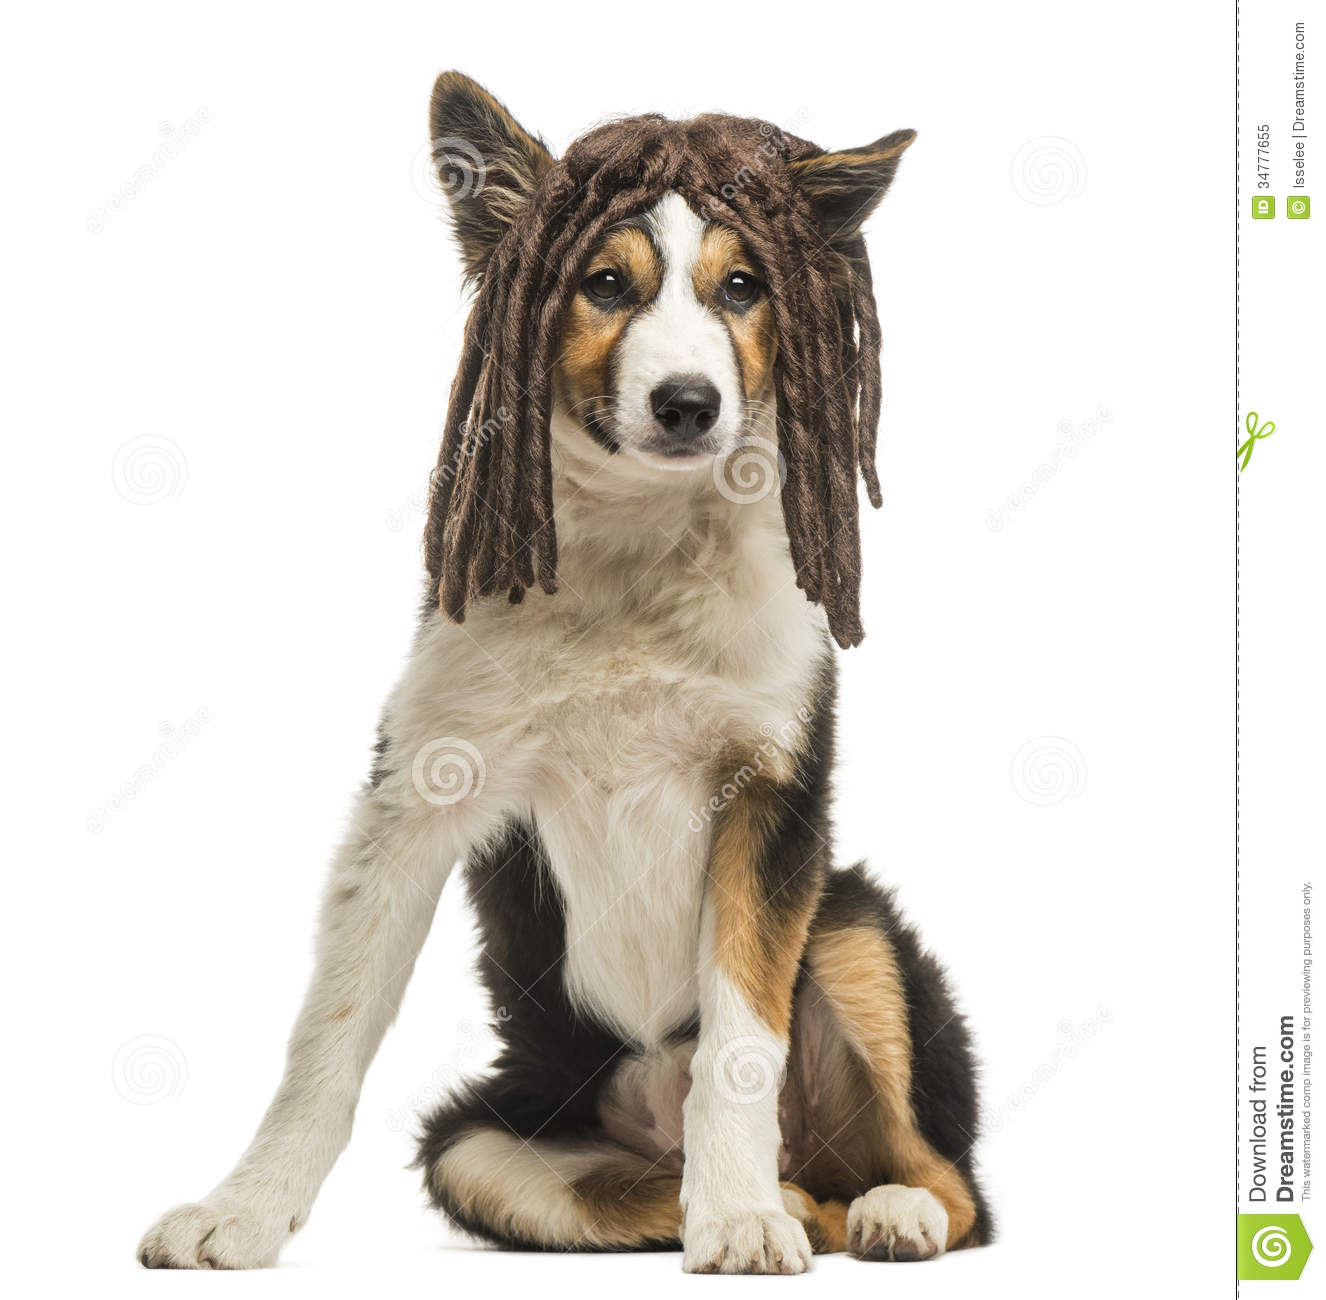 Animal Print Wallpaper Border Border Collie Sitting With A Rasta Wig Isolated Stock